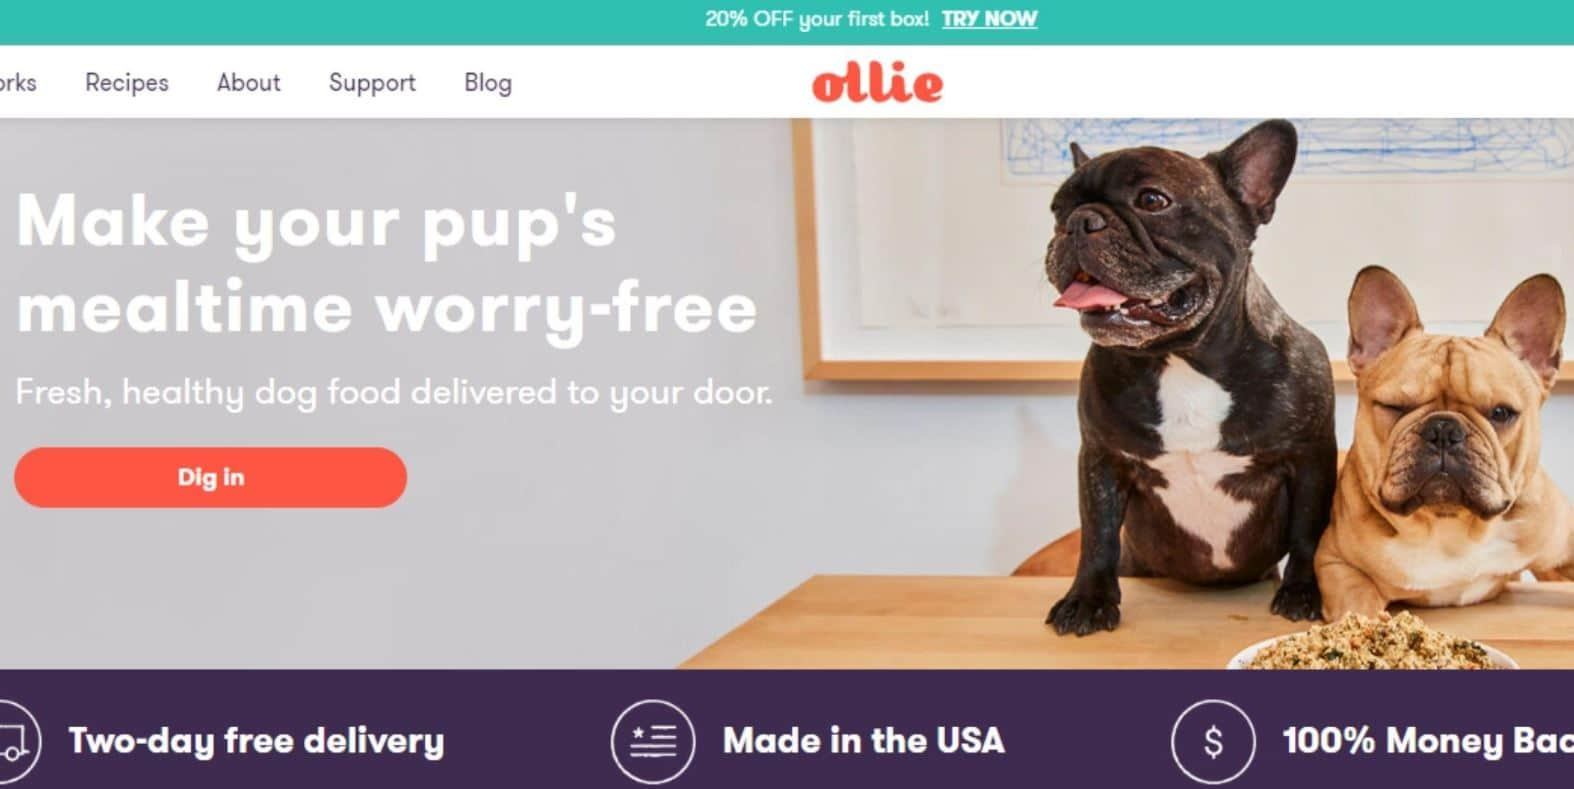 Prudent Pet chooses Ollie as the best pet food company